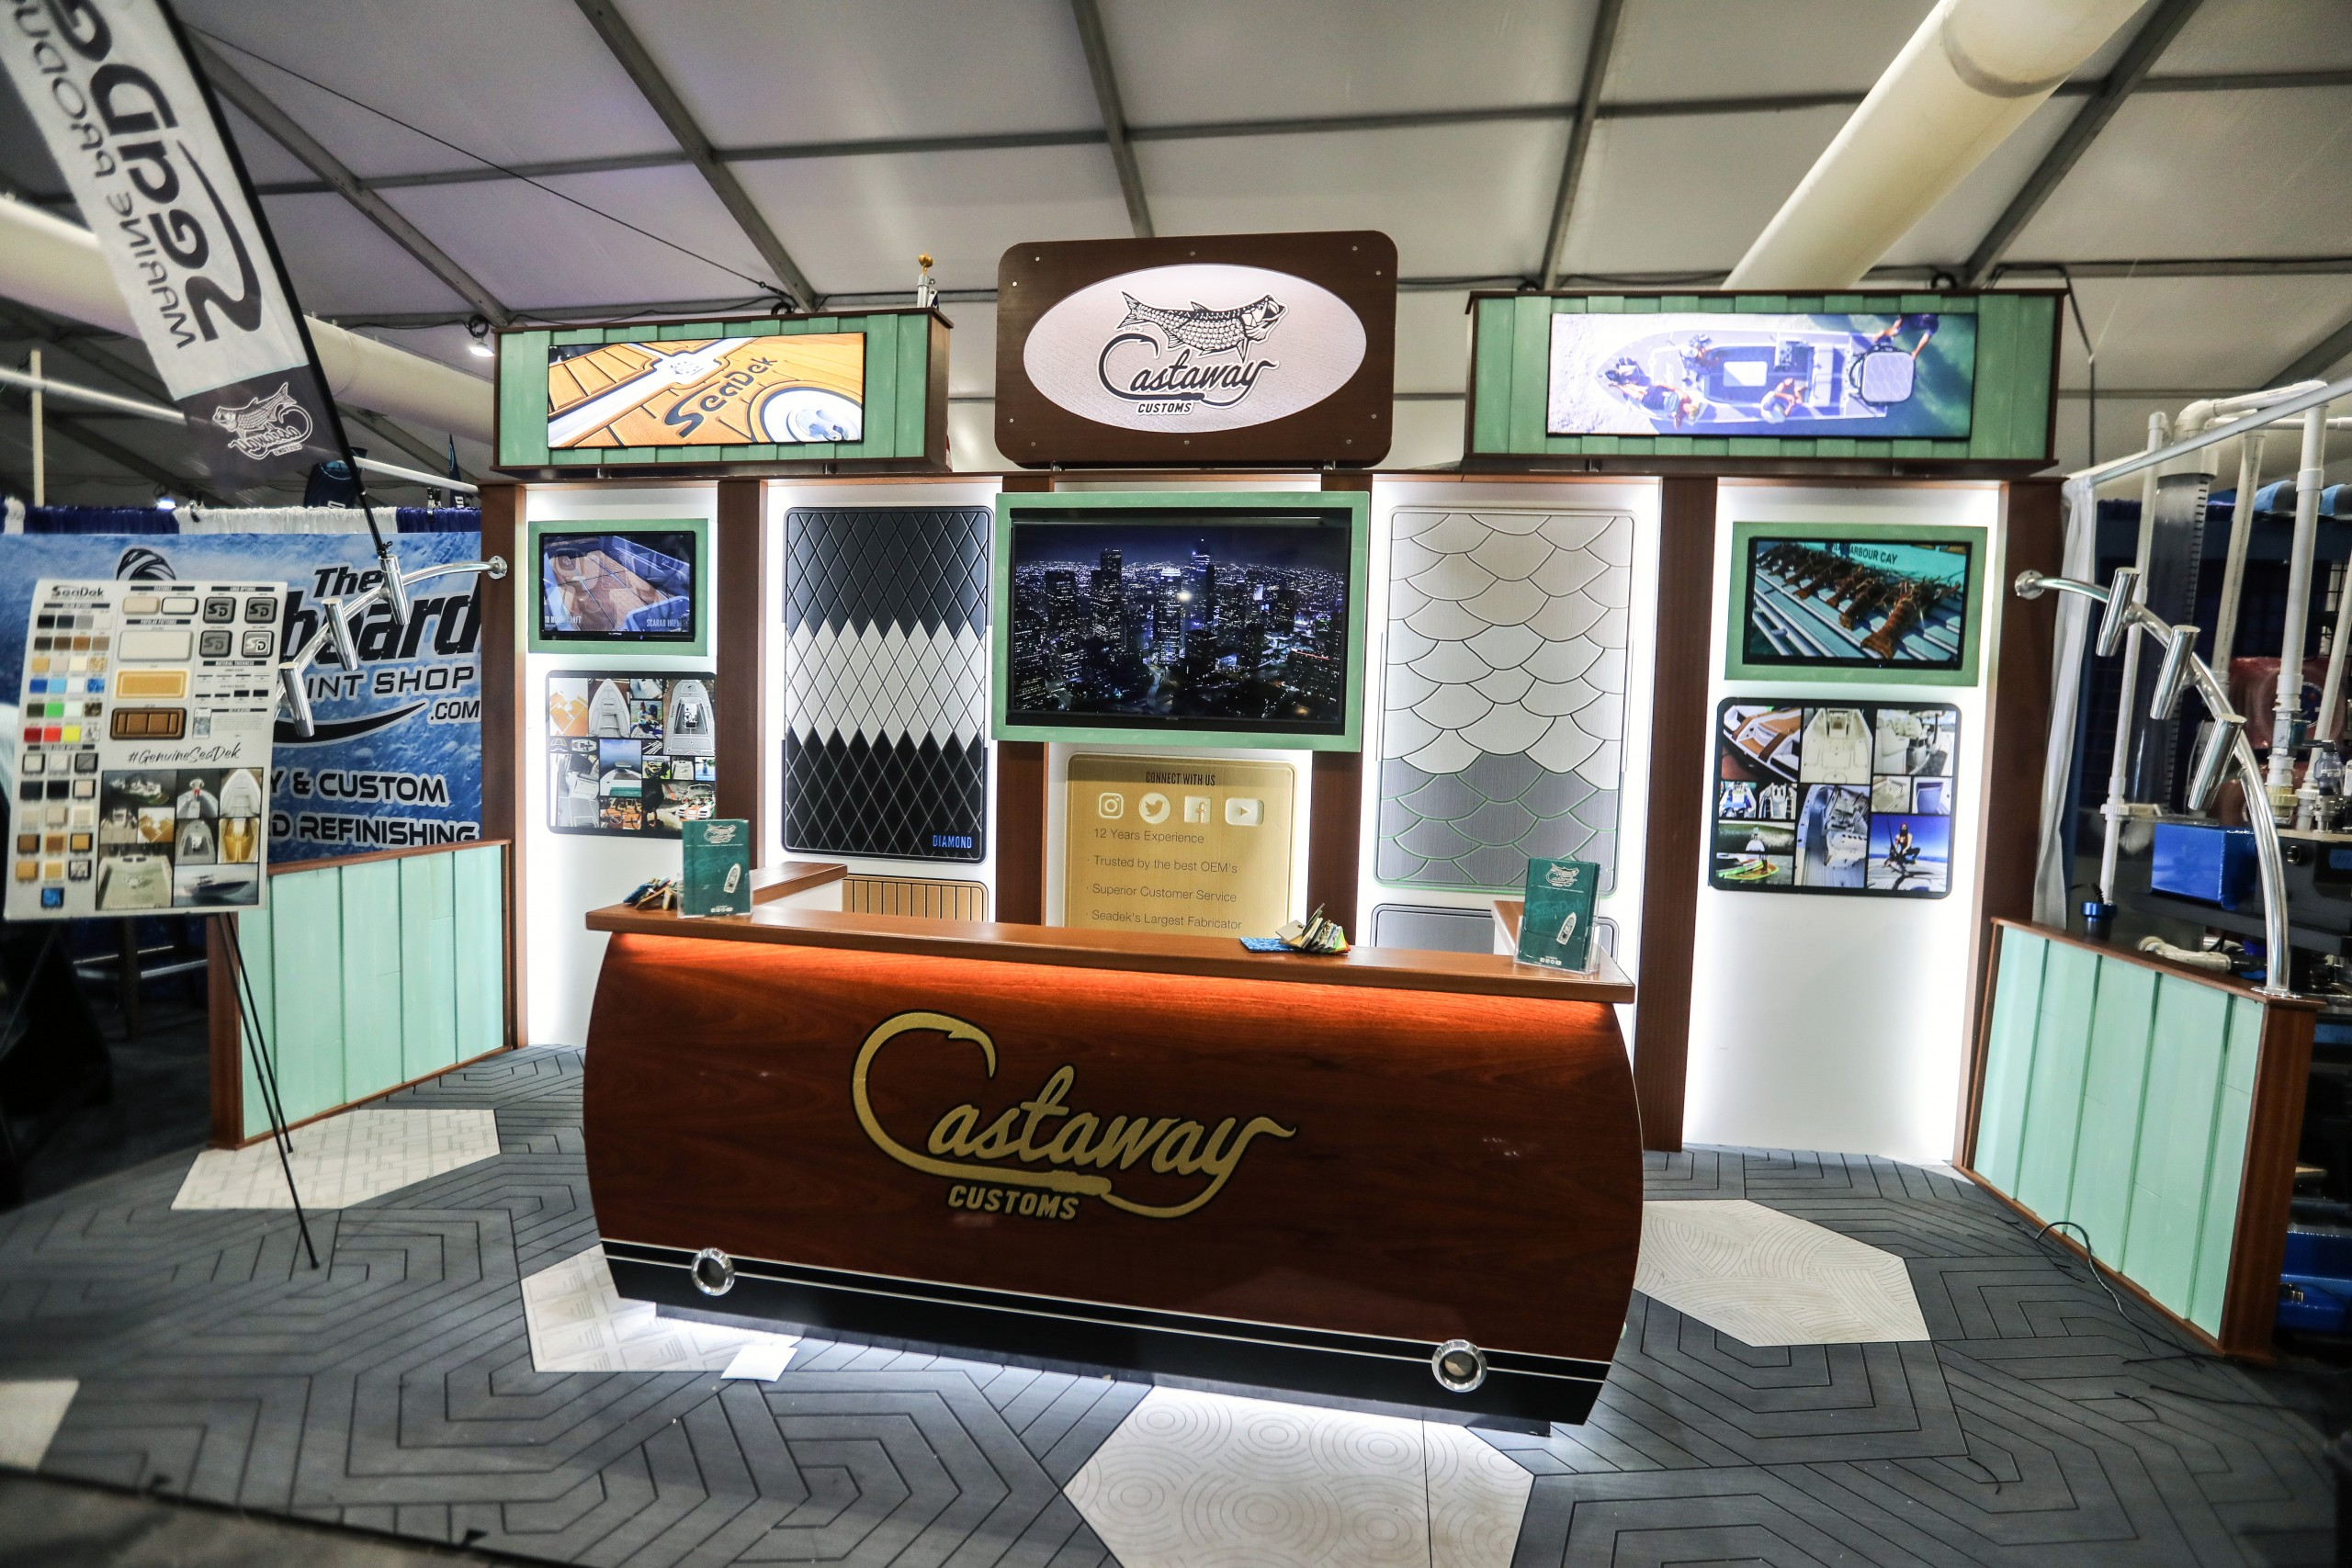 castaway customs on display at the fort lauderdale boat show